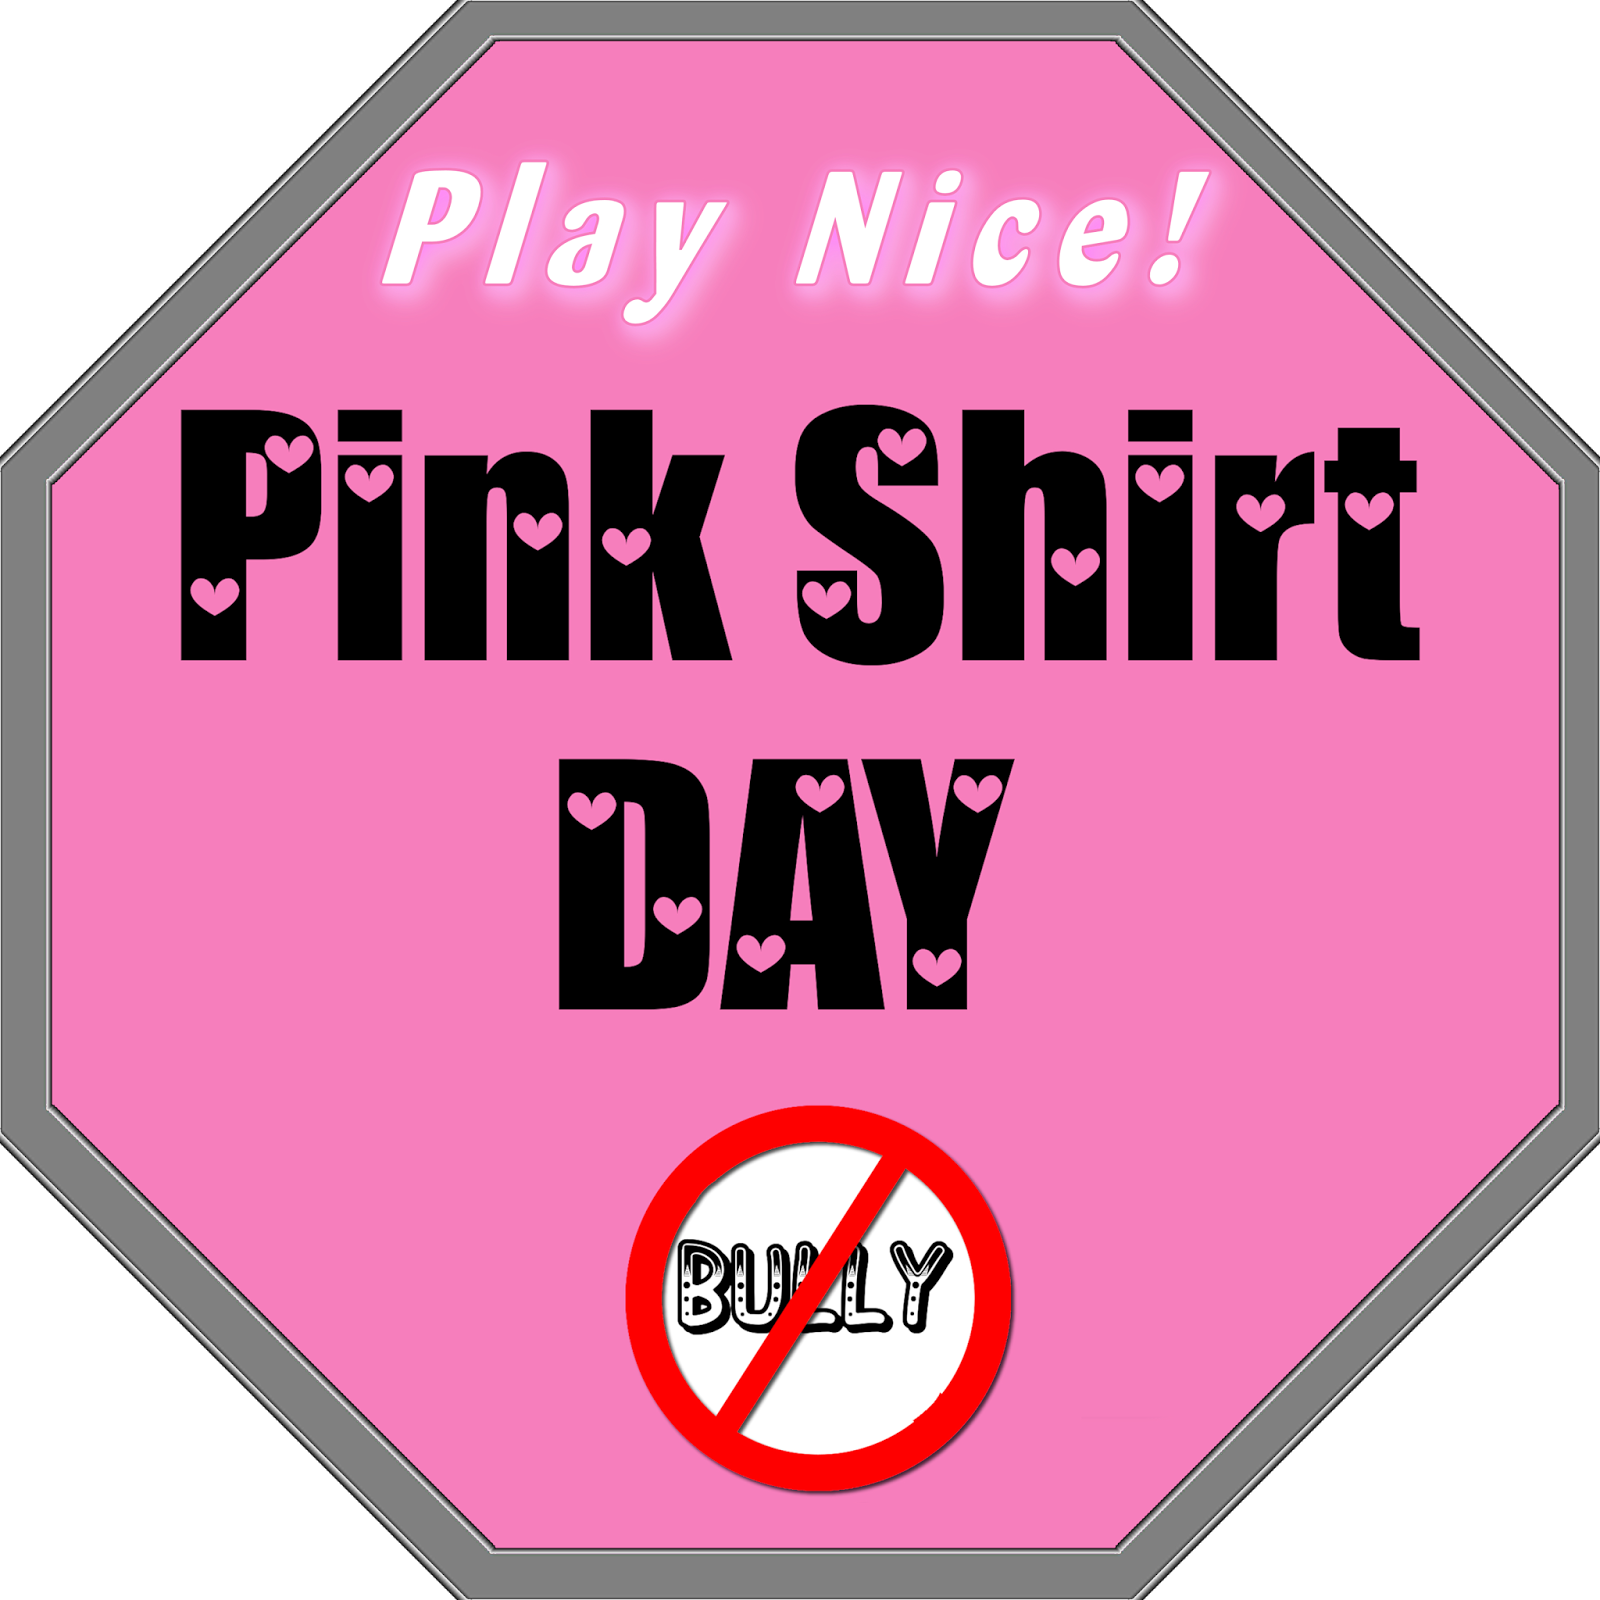 Student clipart bullying. Pink shirt day the